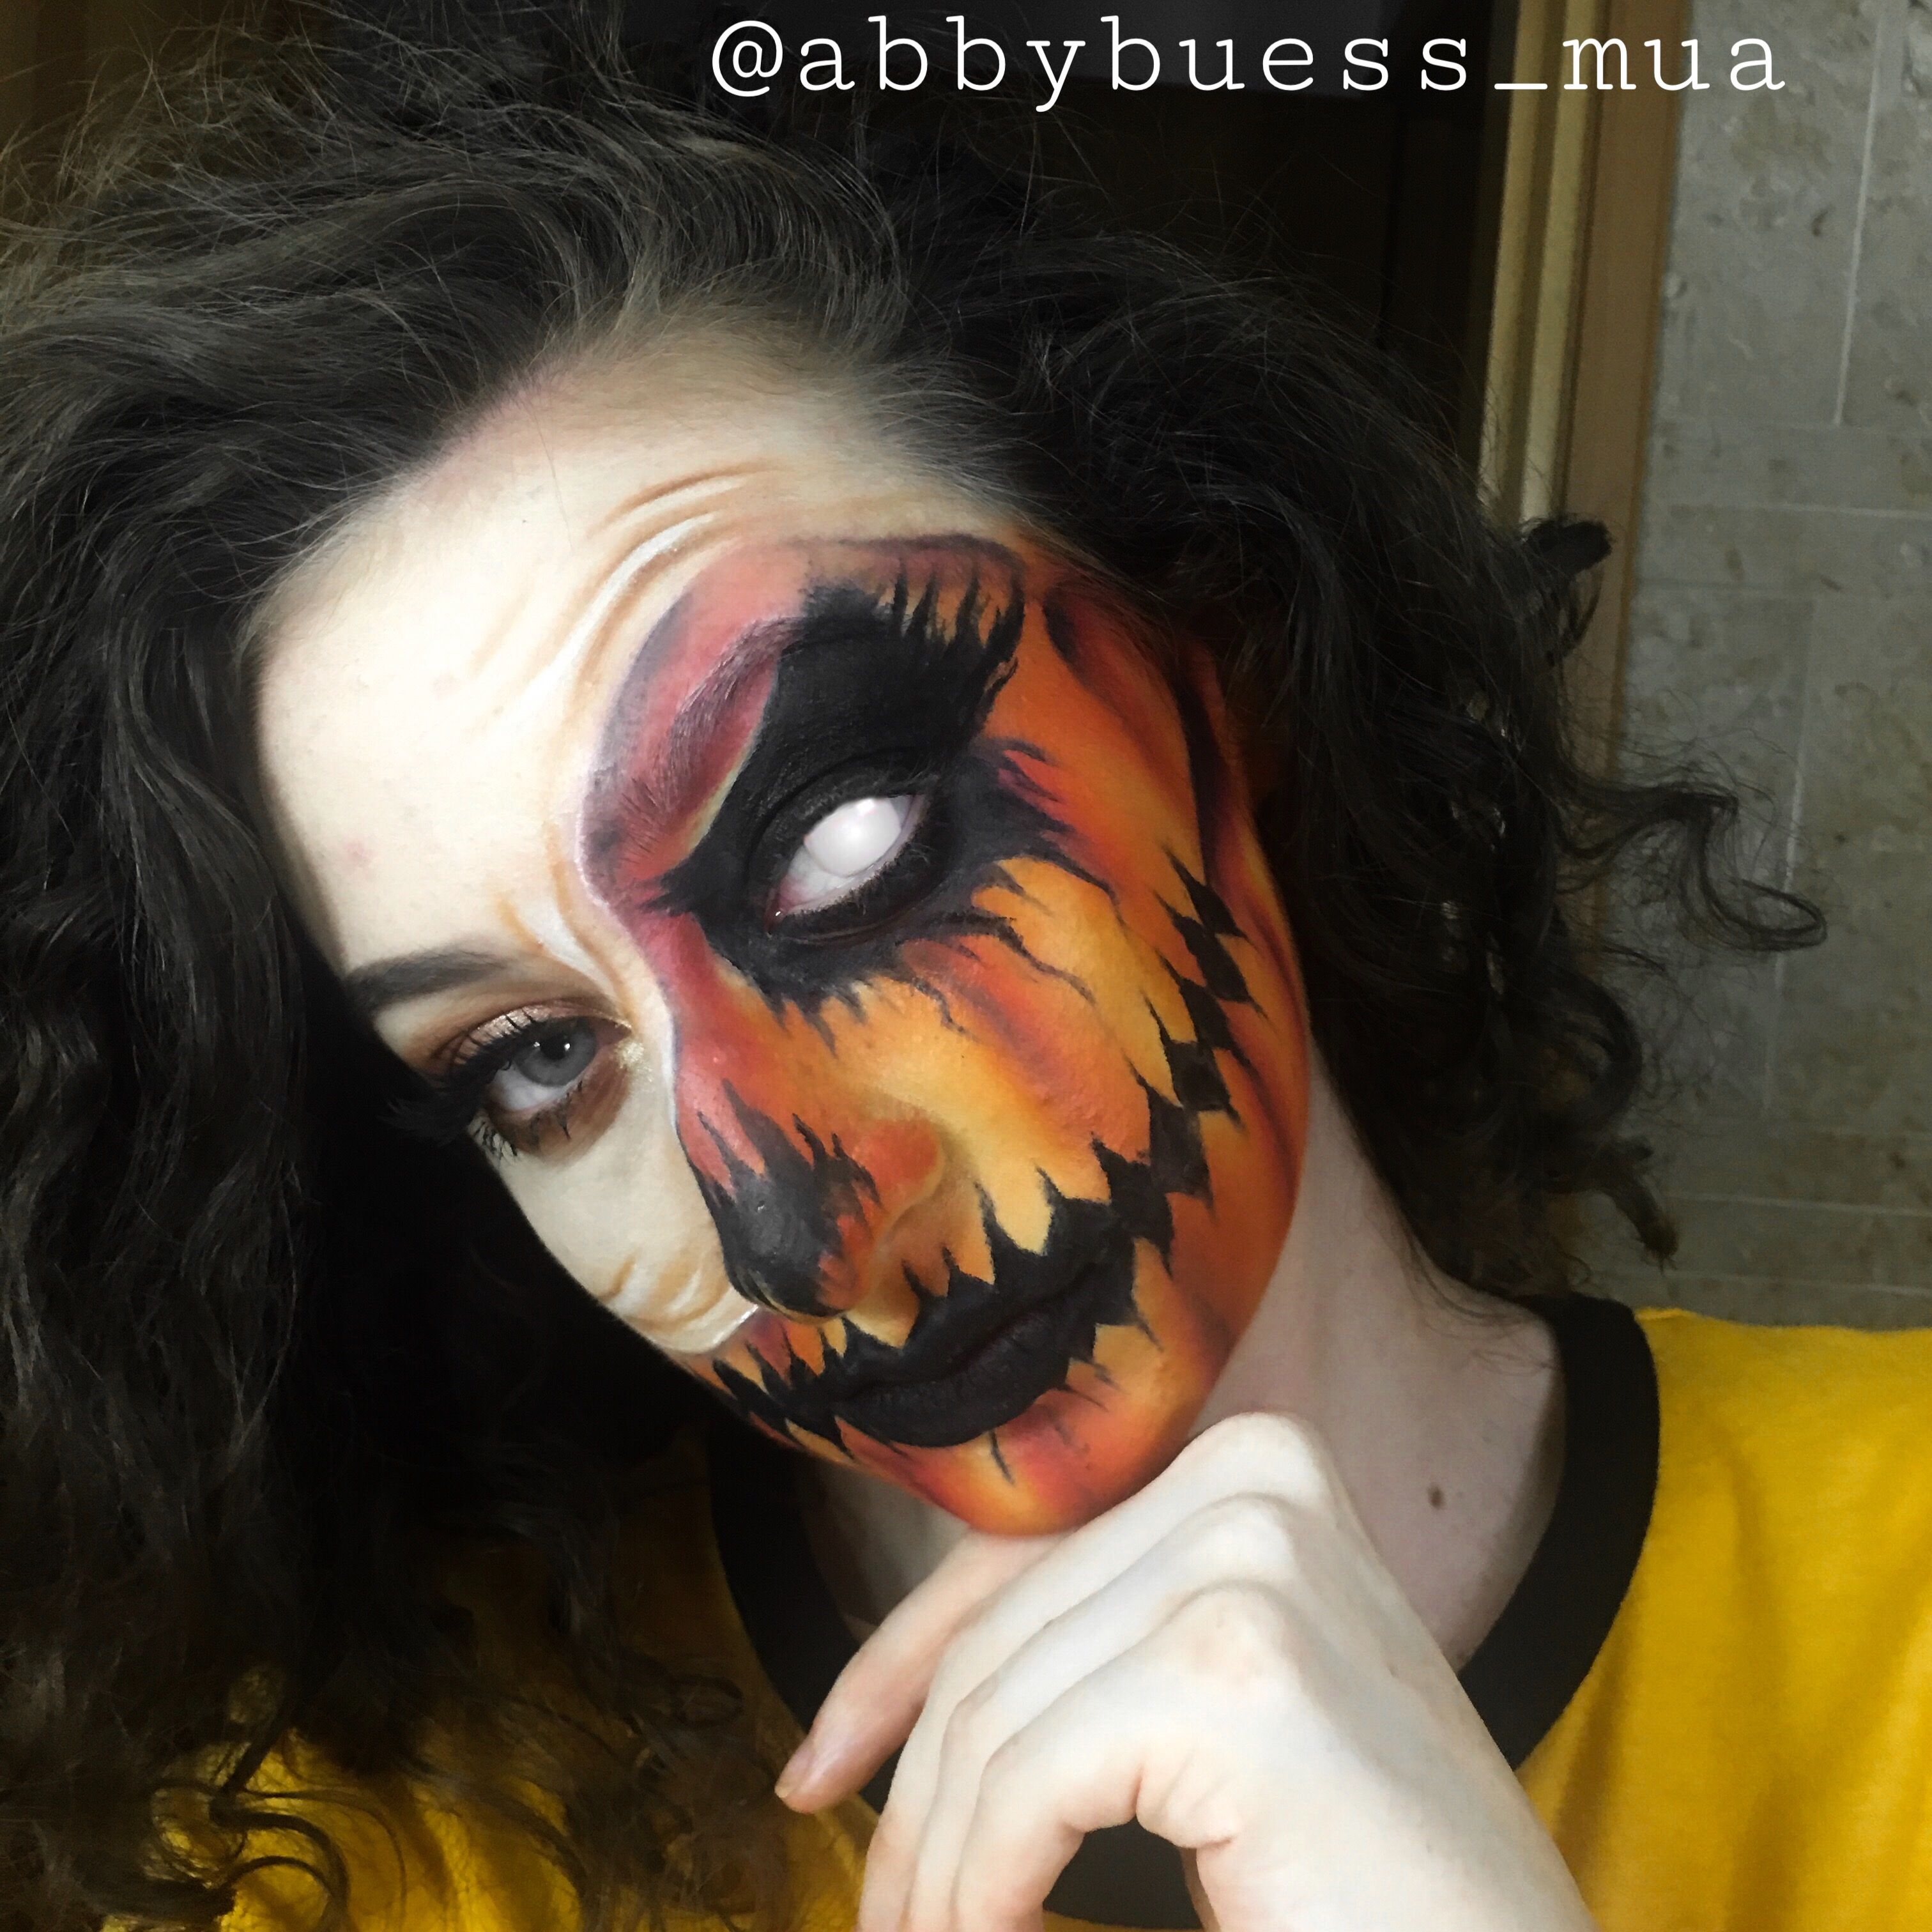 Half face pull up pumpkin Halloween makeup instagram